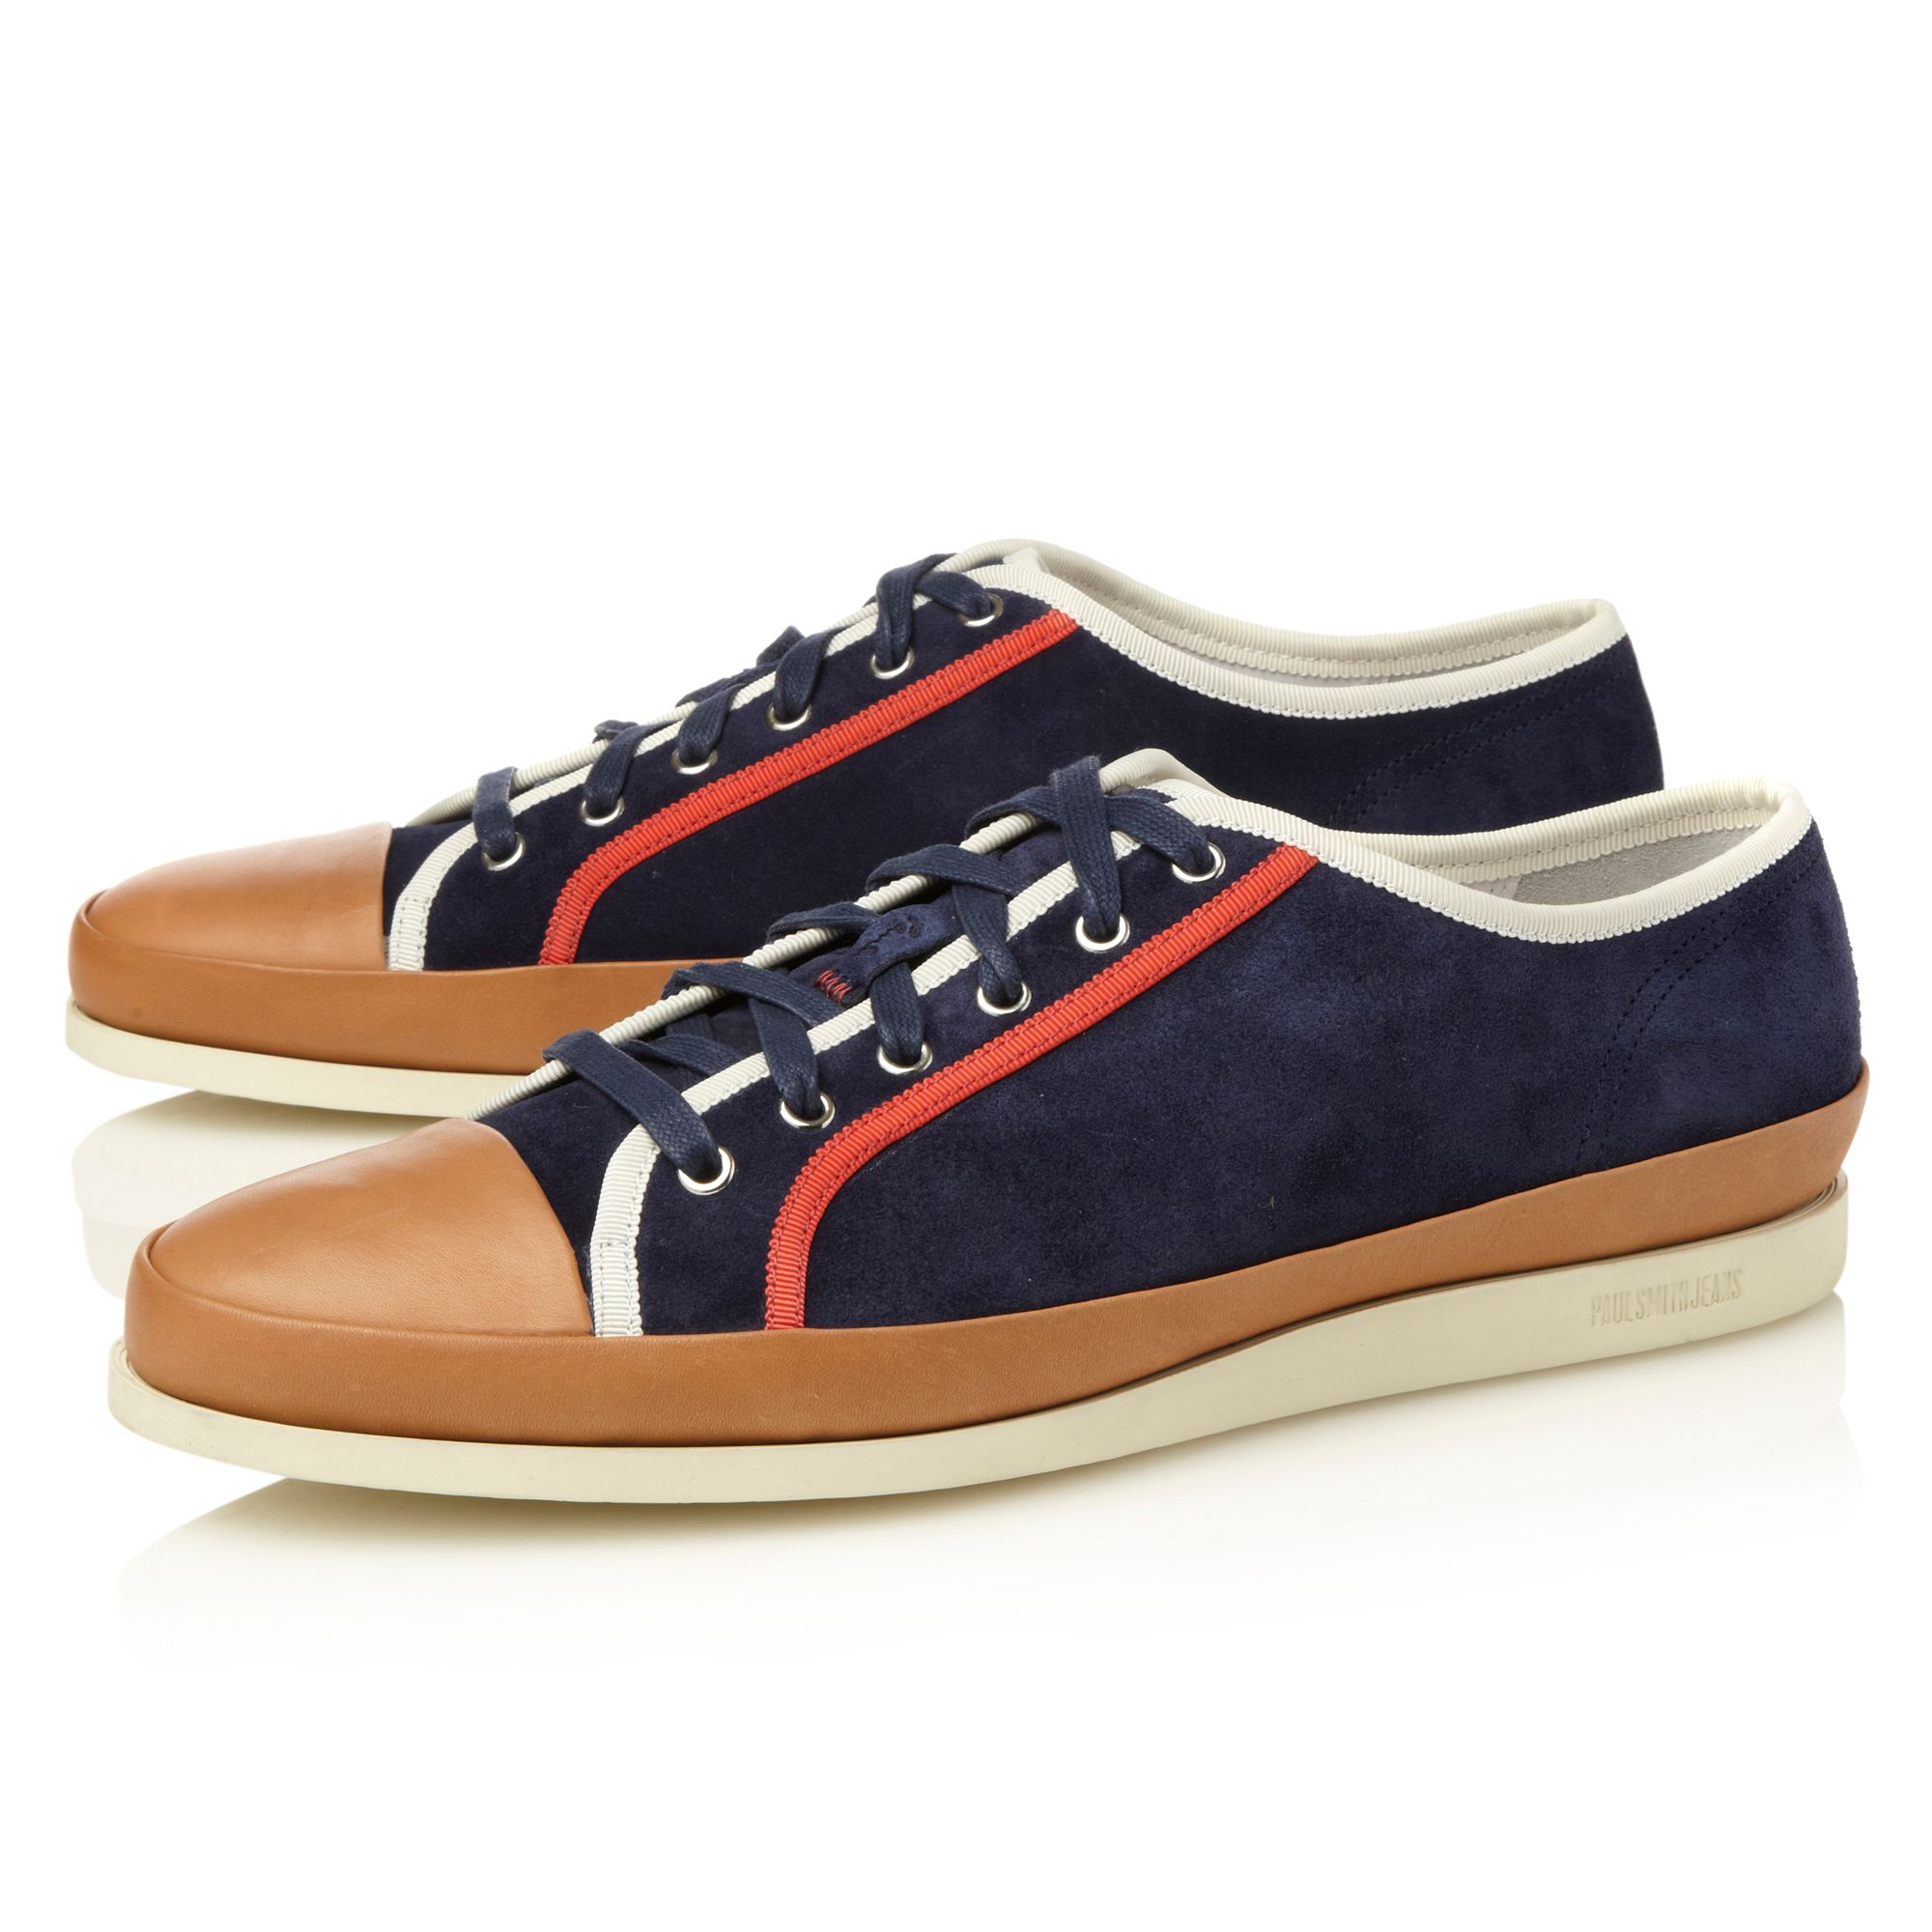 Shore leather toe cap sneakers